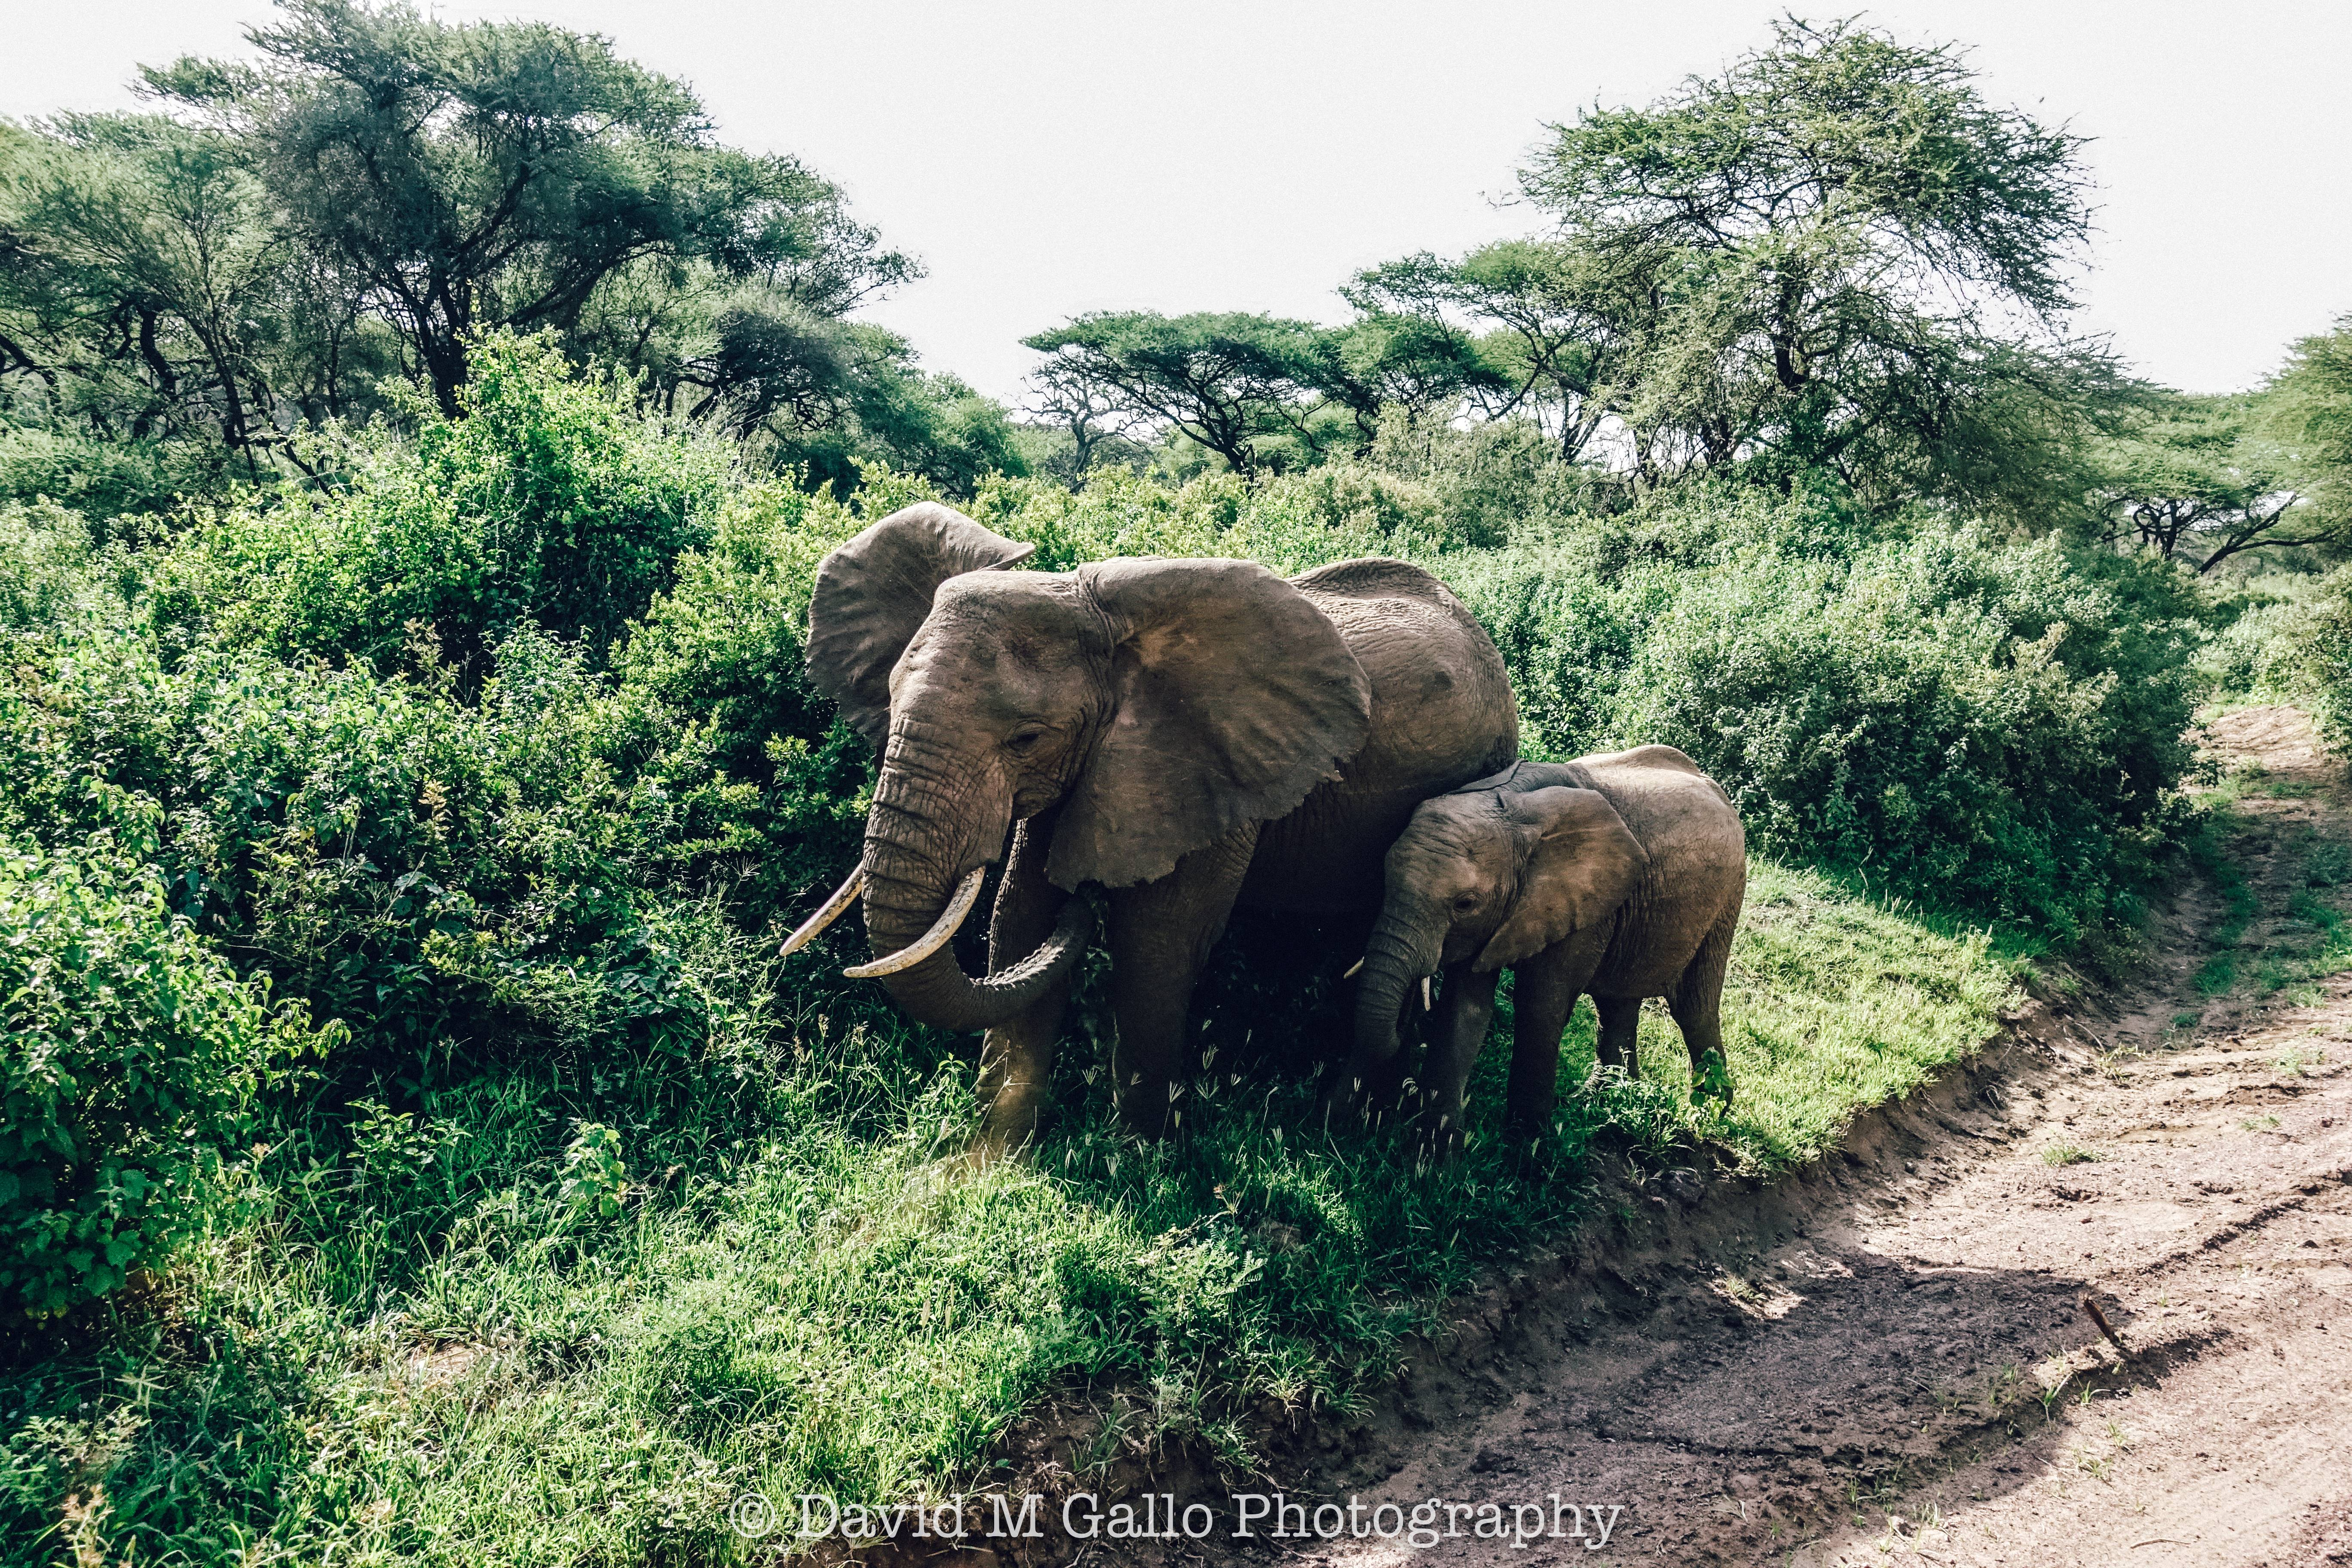 There's something special about the very first time you see wild animals in their natural habitat -- it's truly unforgettable! We had a fantastic game drive through Lake Manyara on our first day with Pristine Trails. Read more at thefivefoottraveler.com